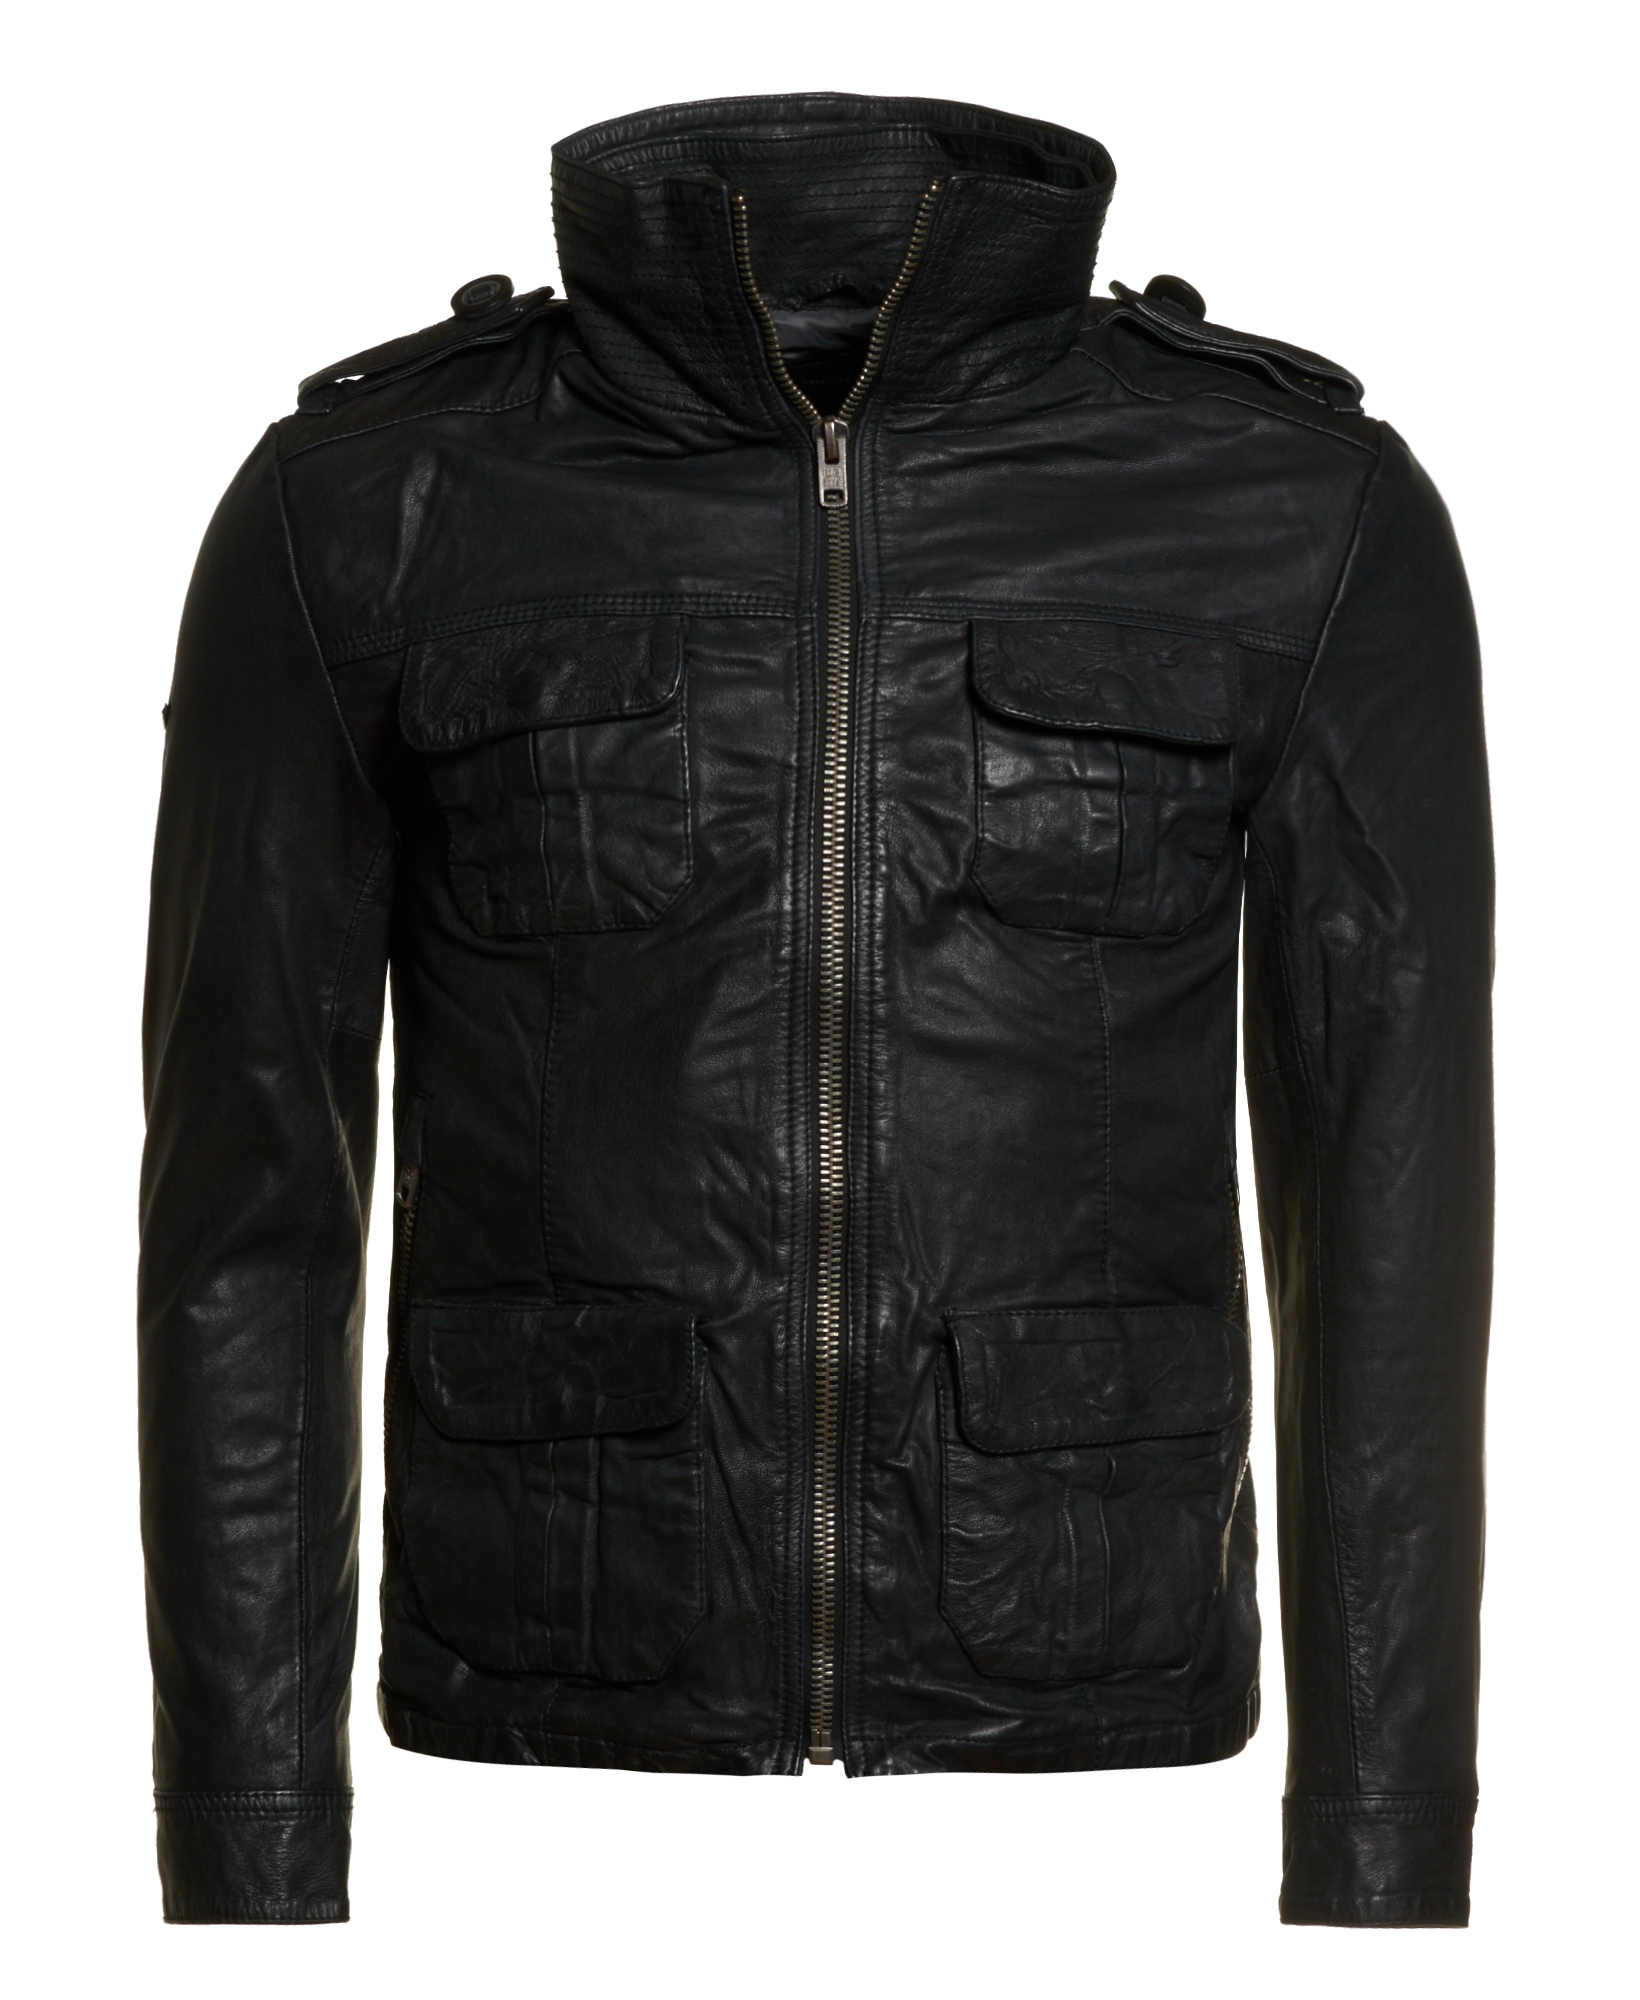 neue herren superdry jacke new brad hero jacket schwarz ebay. Black Bedroom Furniture Sets. Home Design Ideas